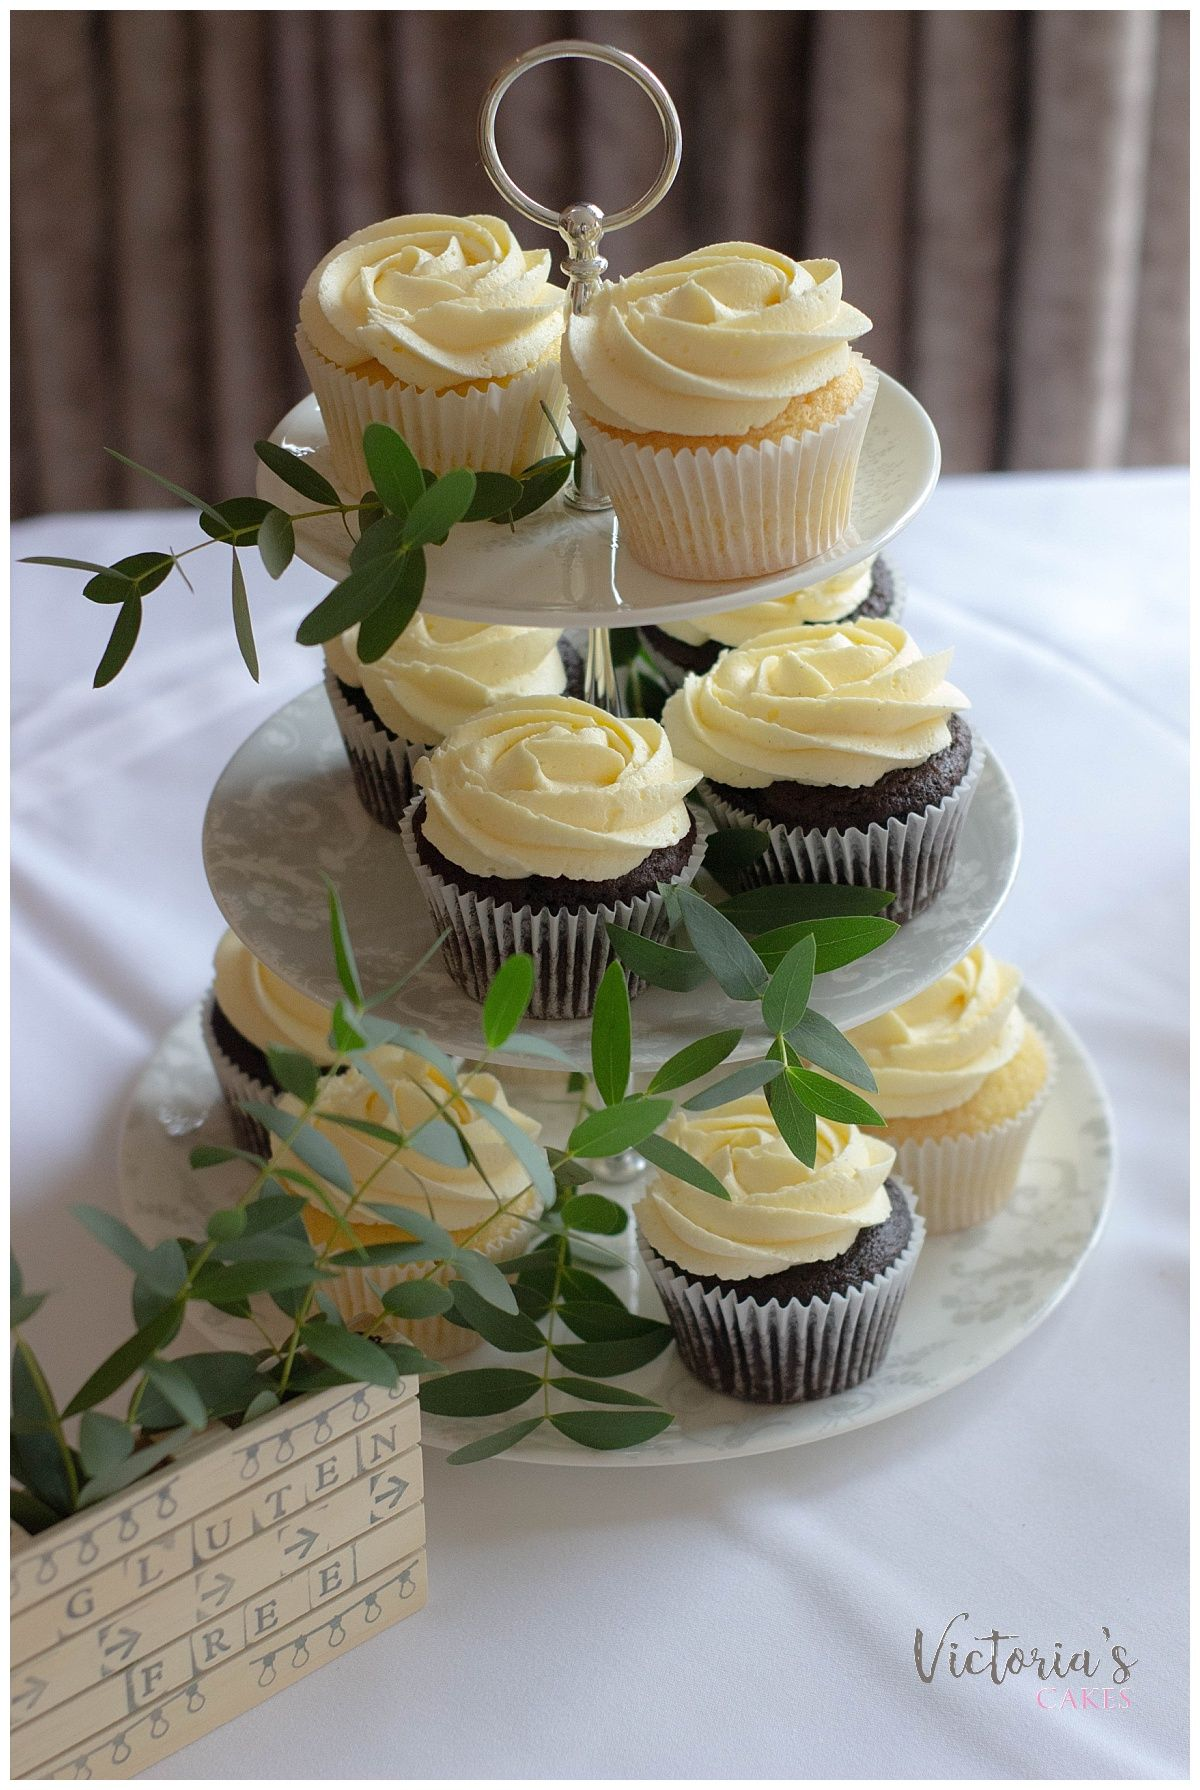 Gluten and dairy free wedding cupcakes victoria cakes